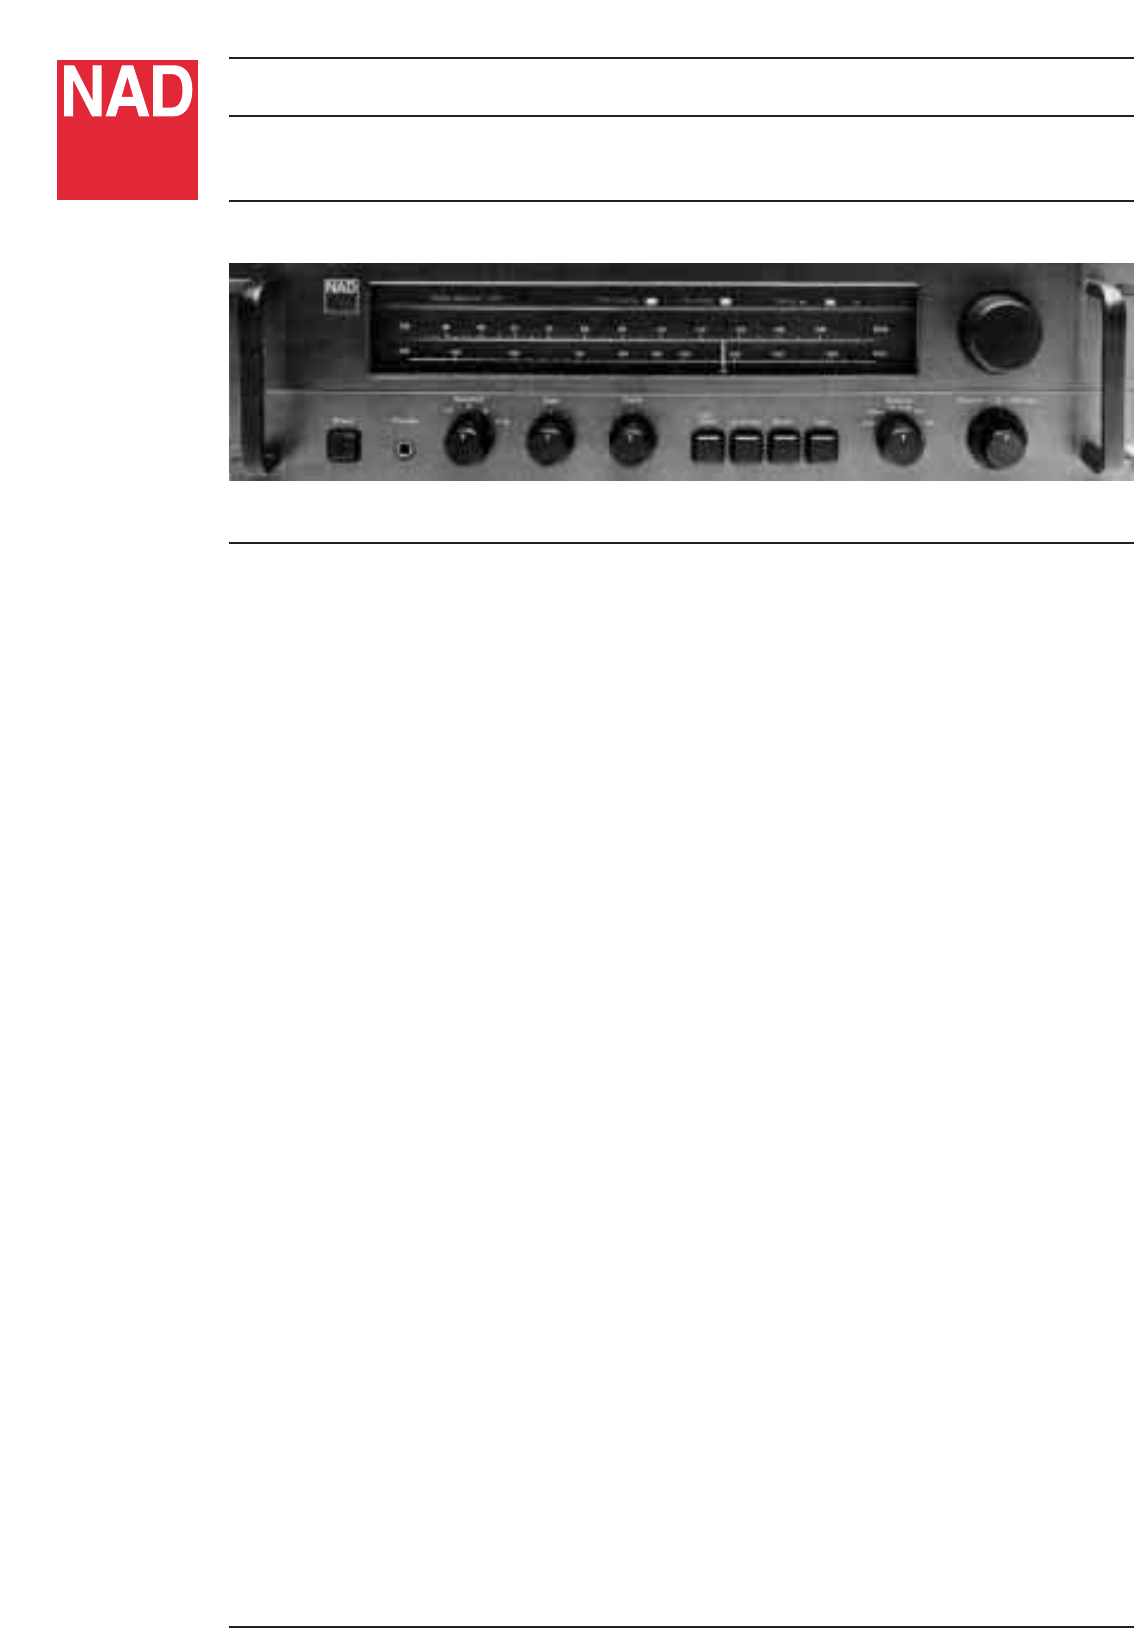 nad stereo receiver 7020 user guide manualsonline com rh audio manualsonline com Nad 7020E Stereo Receiver Nad Receiver